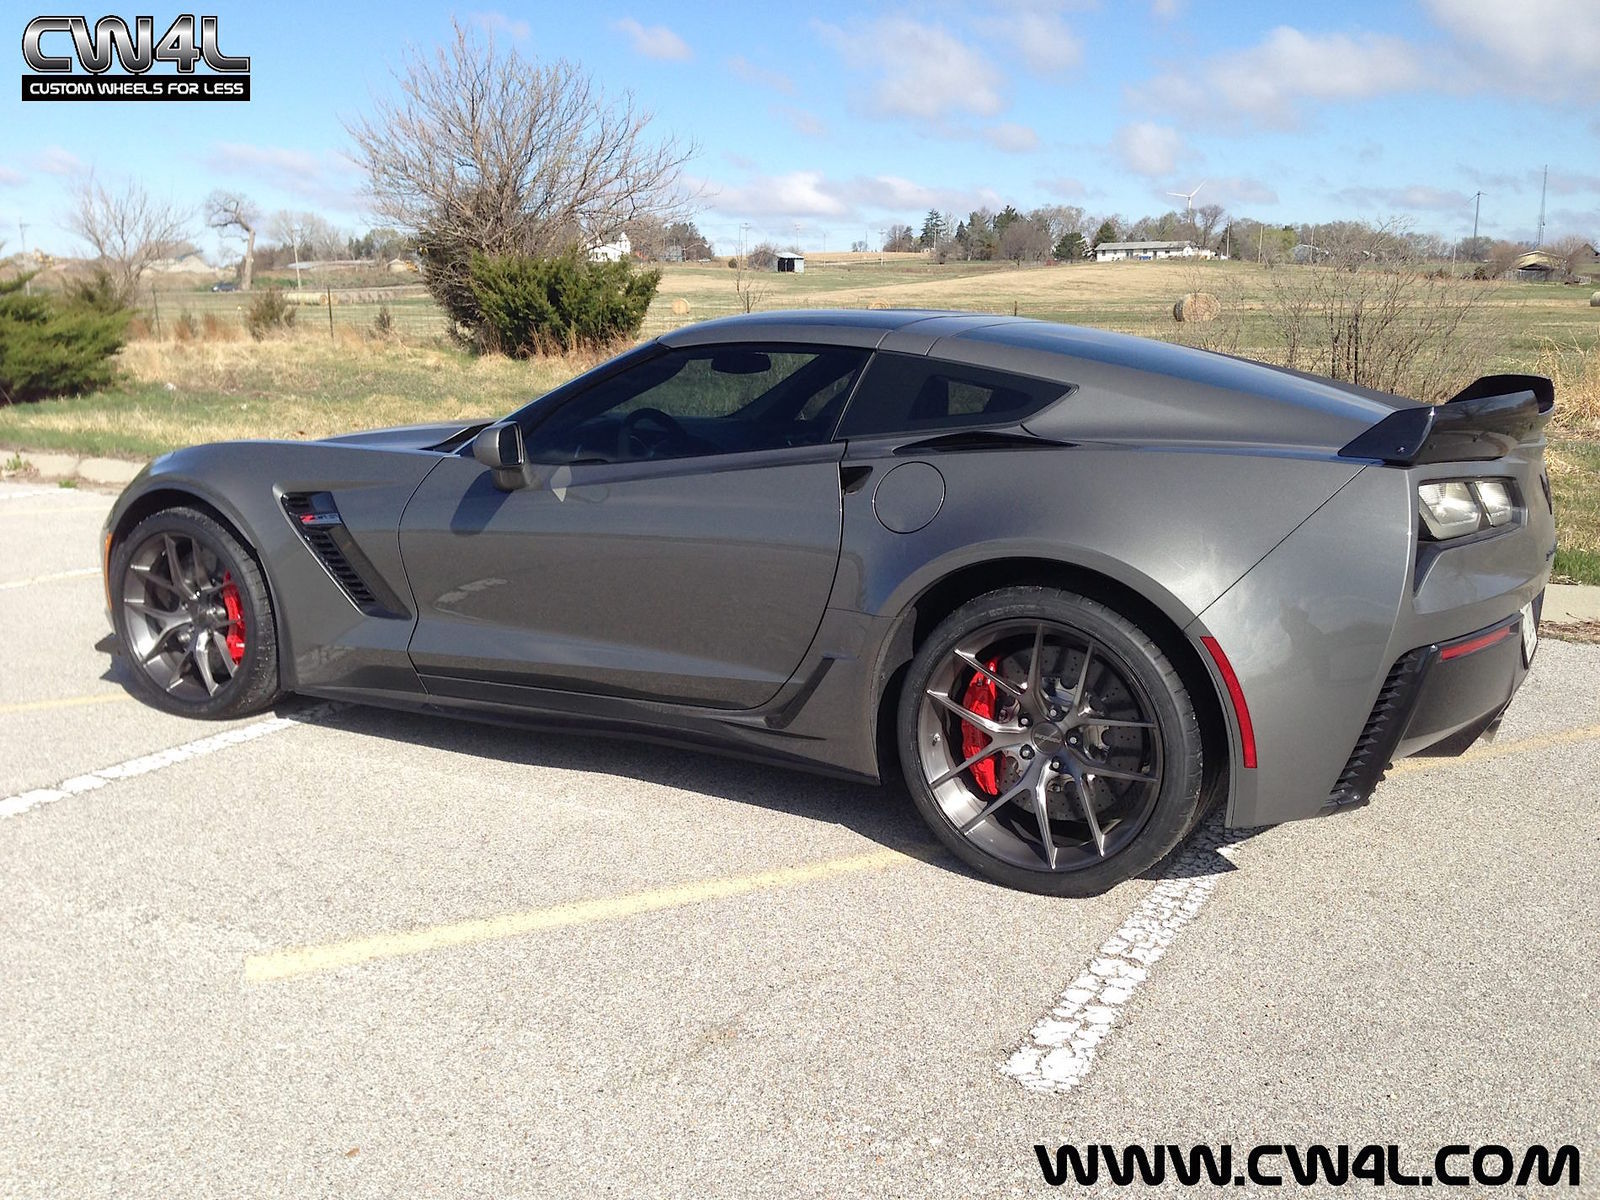 2015 Chevrolet Corvette Z06 | Chevrolet C7 Corvette Z06 on Forgeline One Piece Forged Monoblock VX1 Wheels